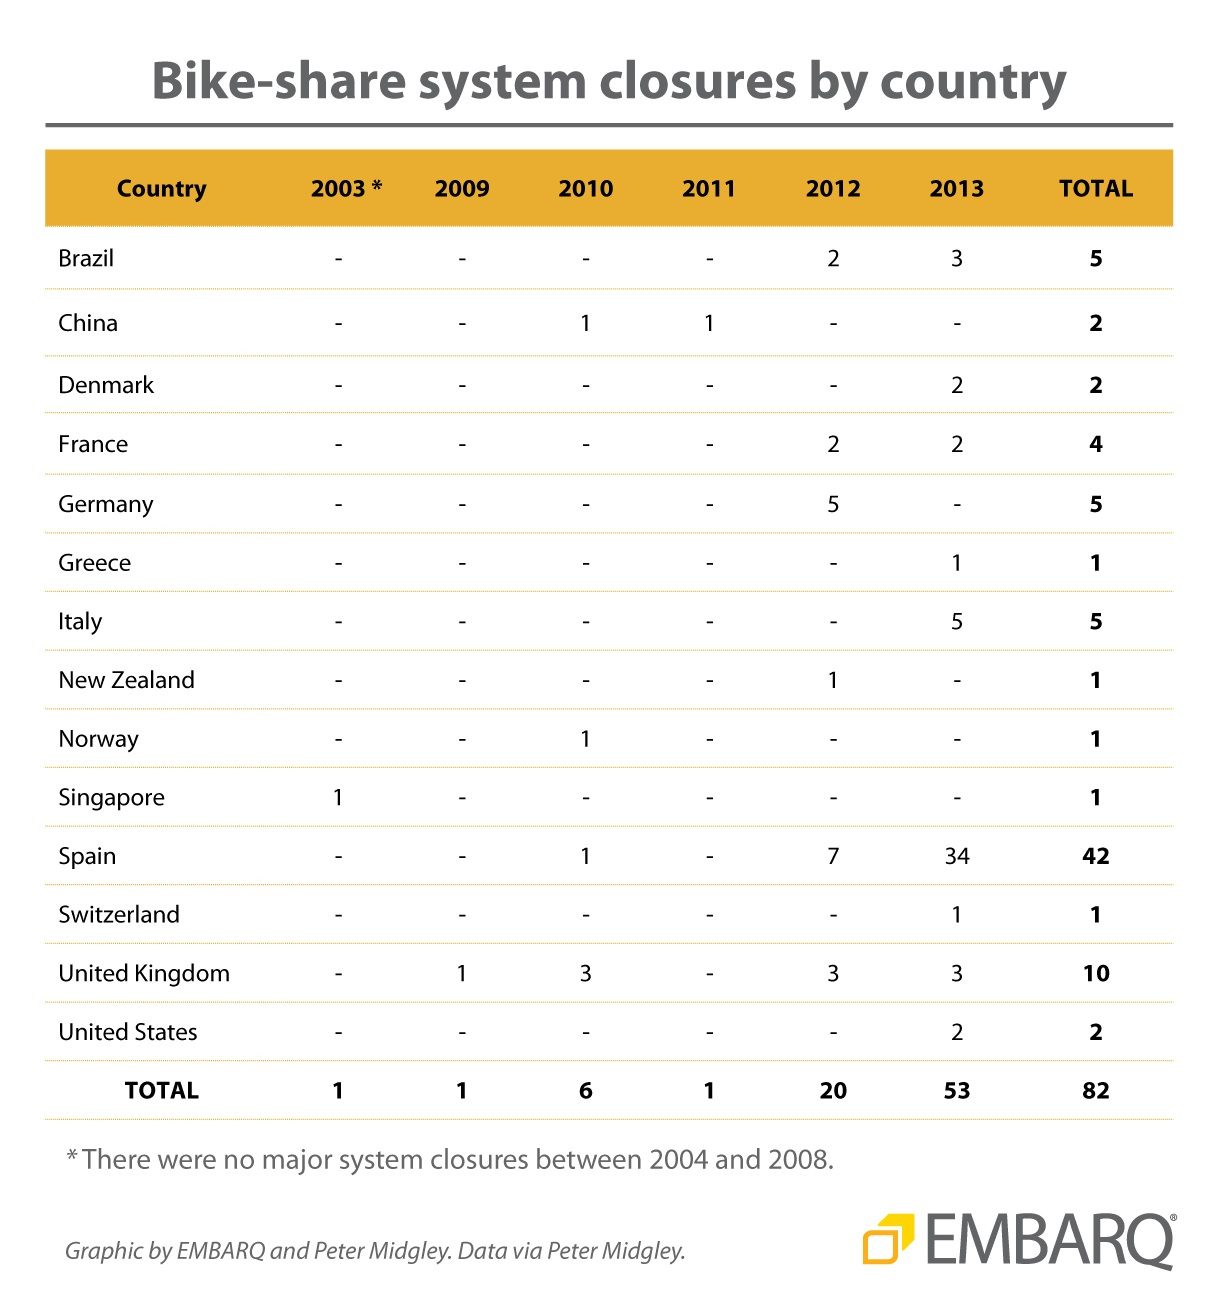 Bike-share system closure by country. EMBARQ and Peter Midgley.